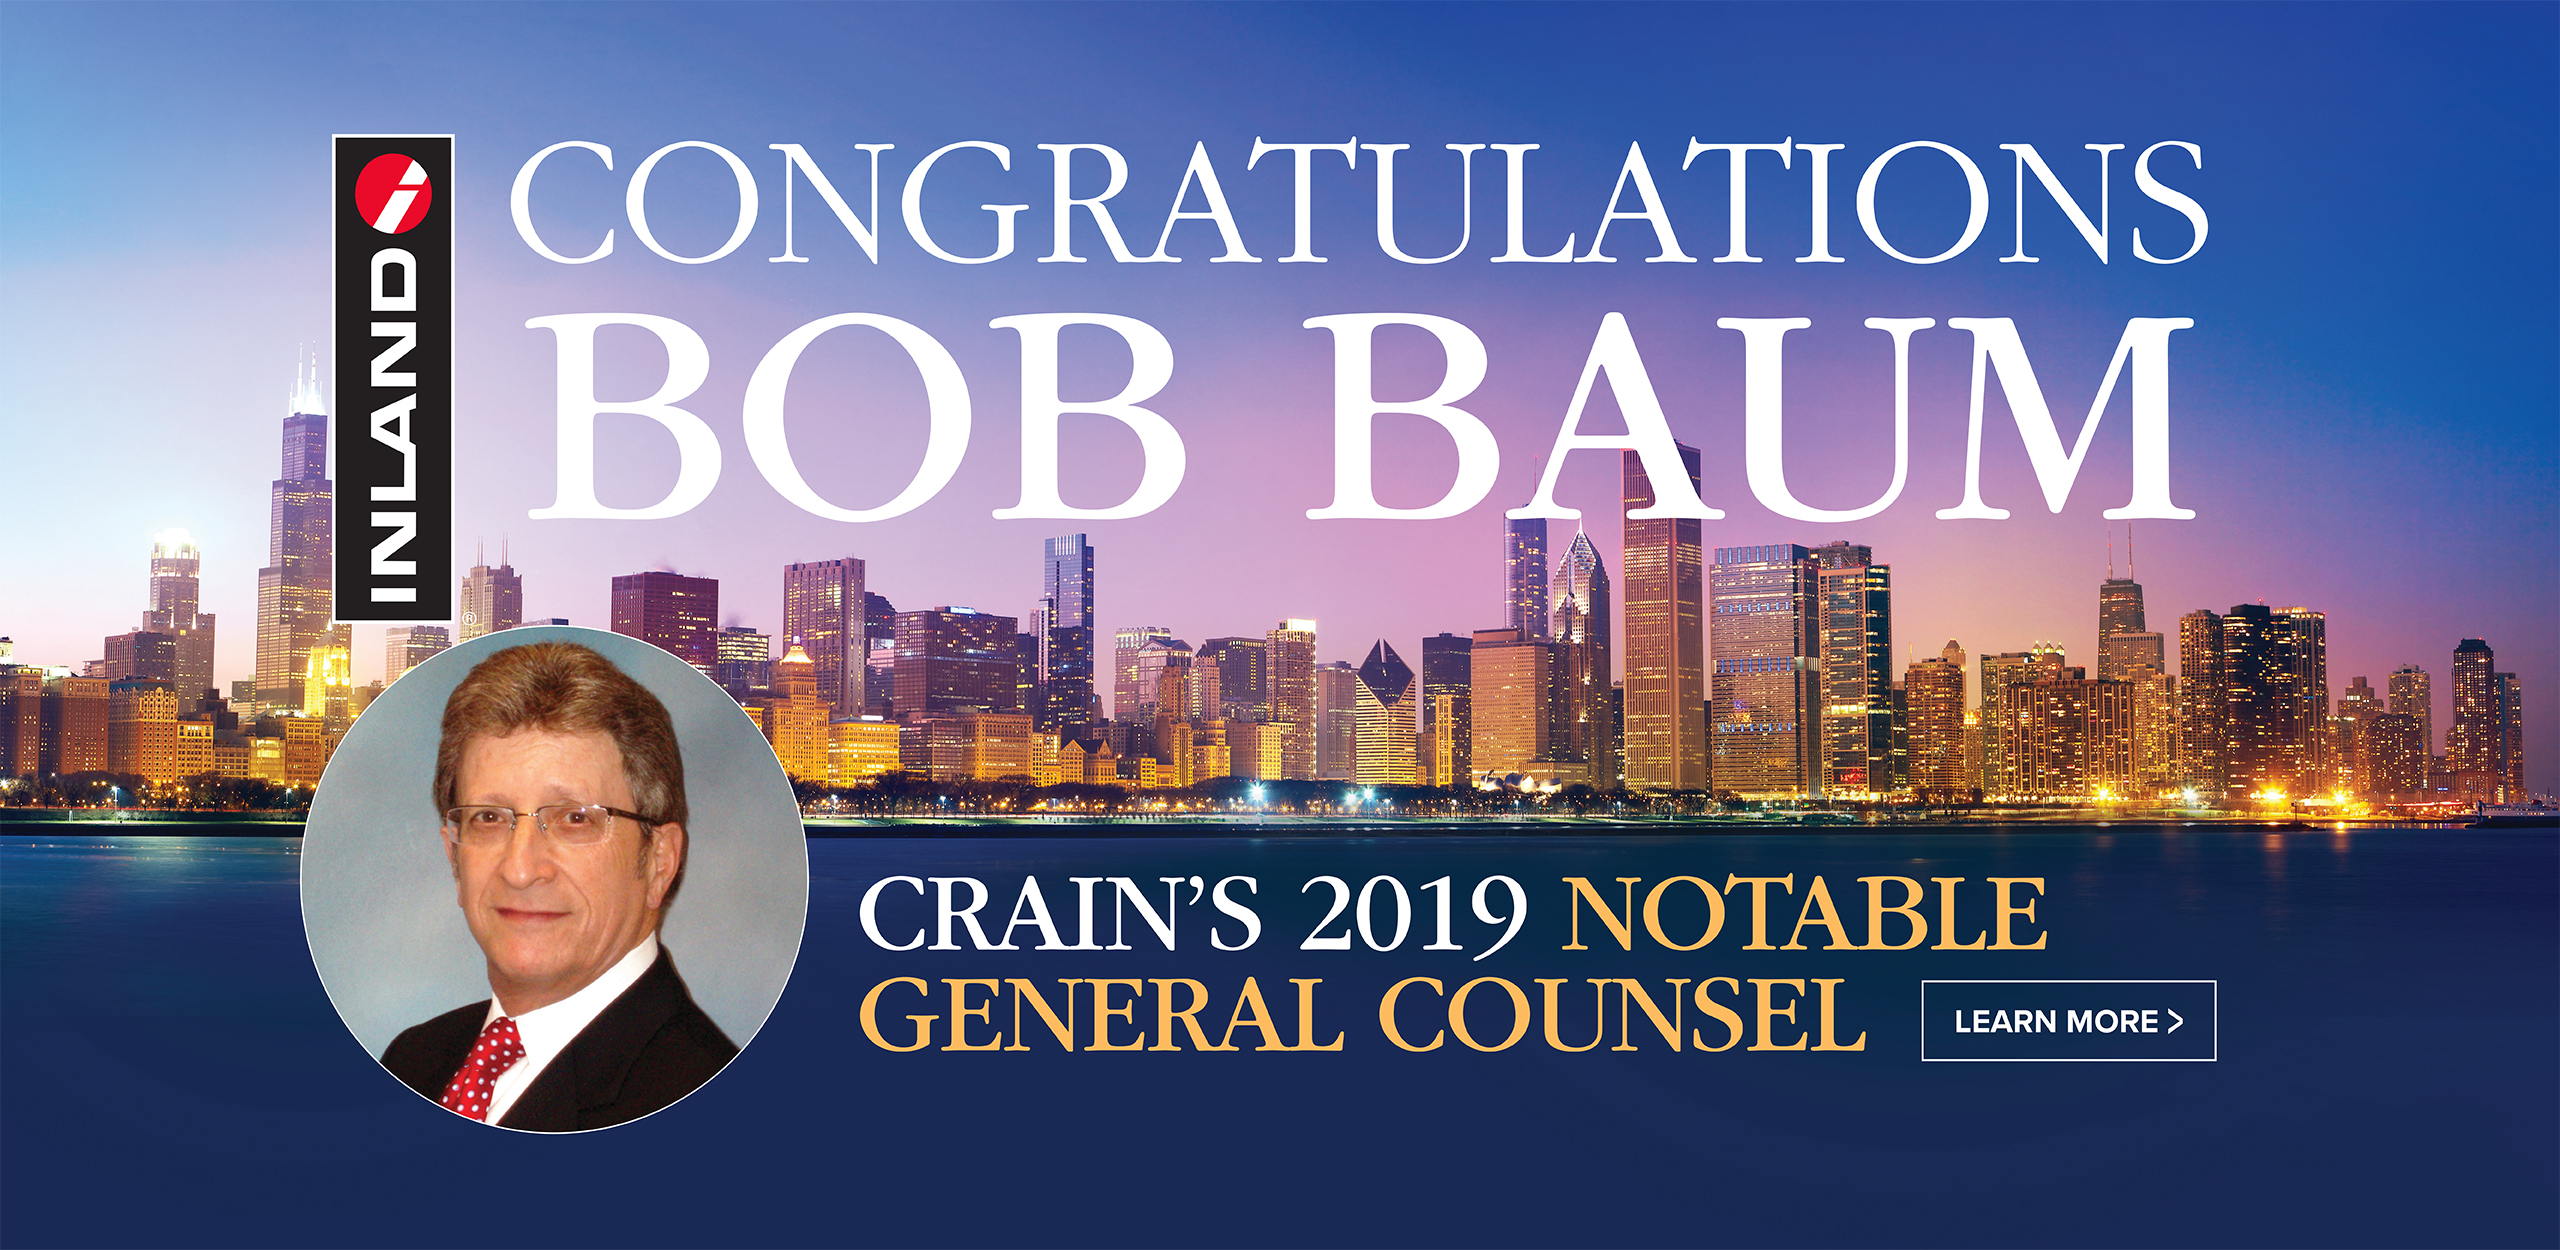 Bob Baum Crain's General Counsel Award 2019